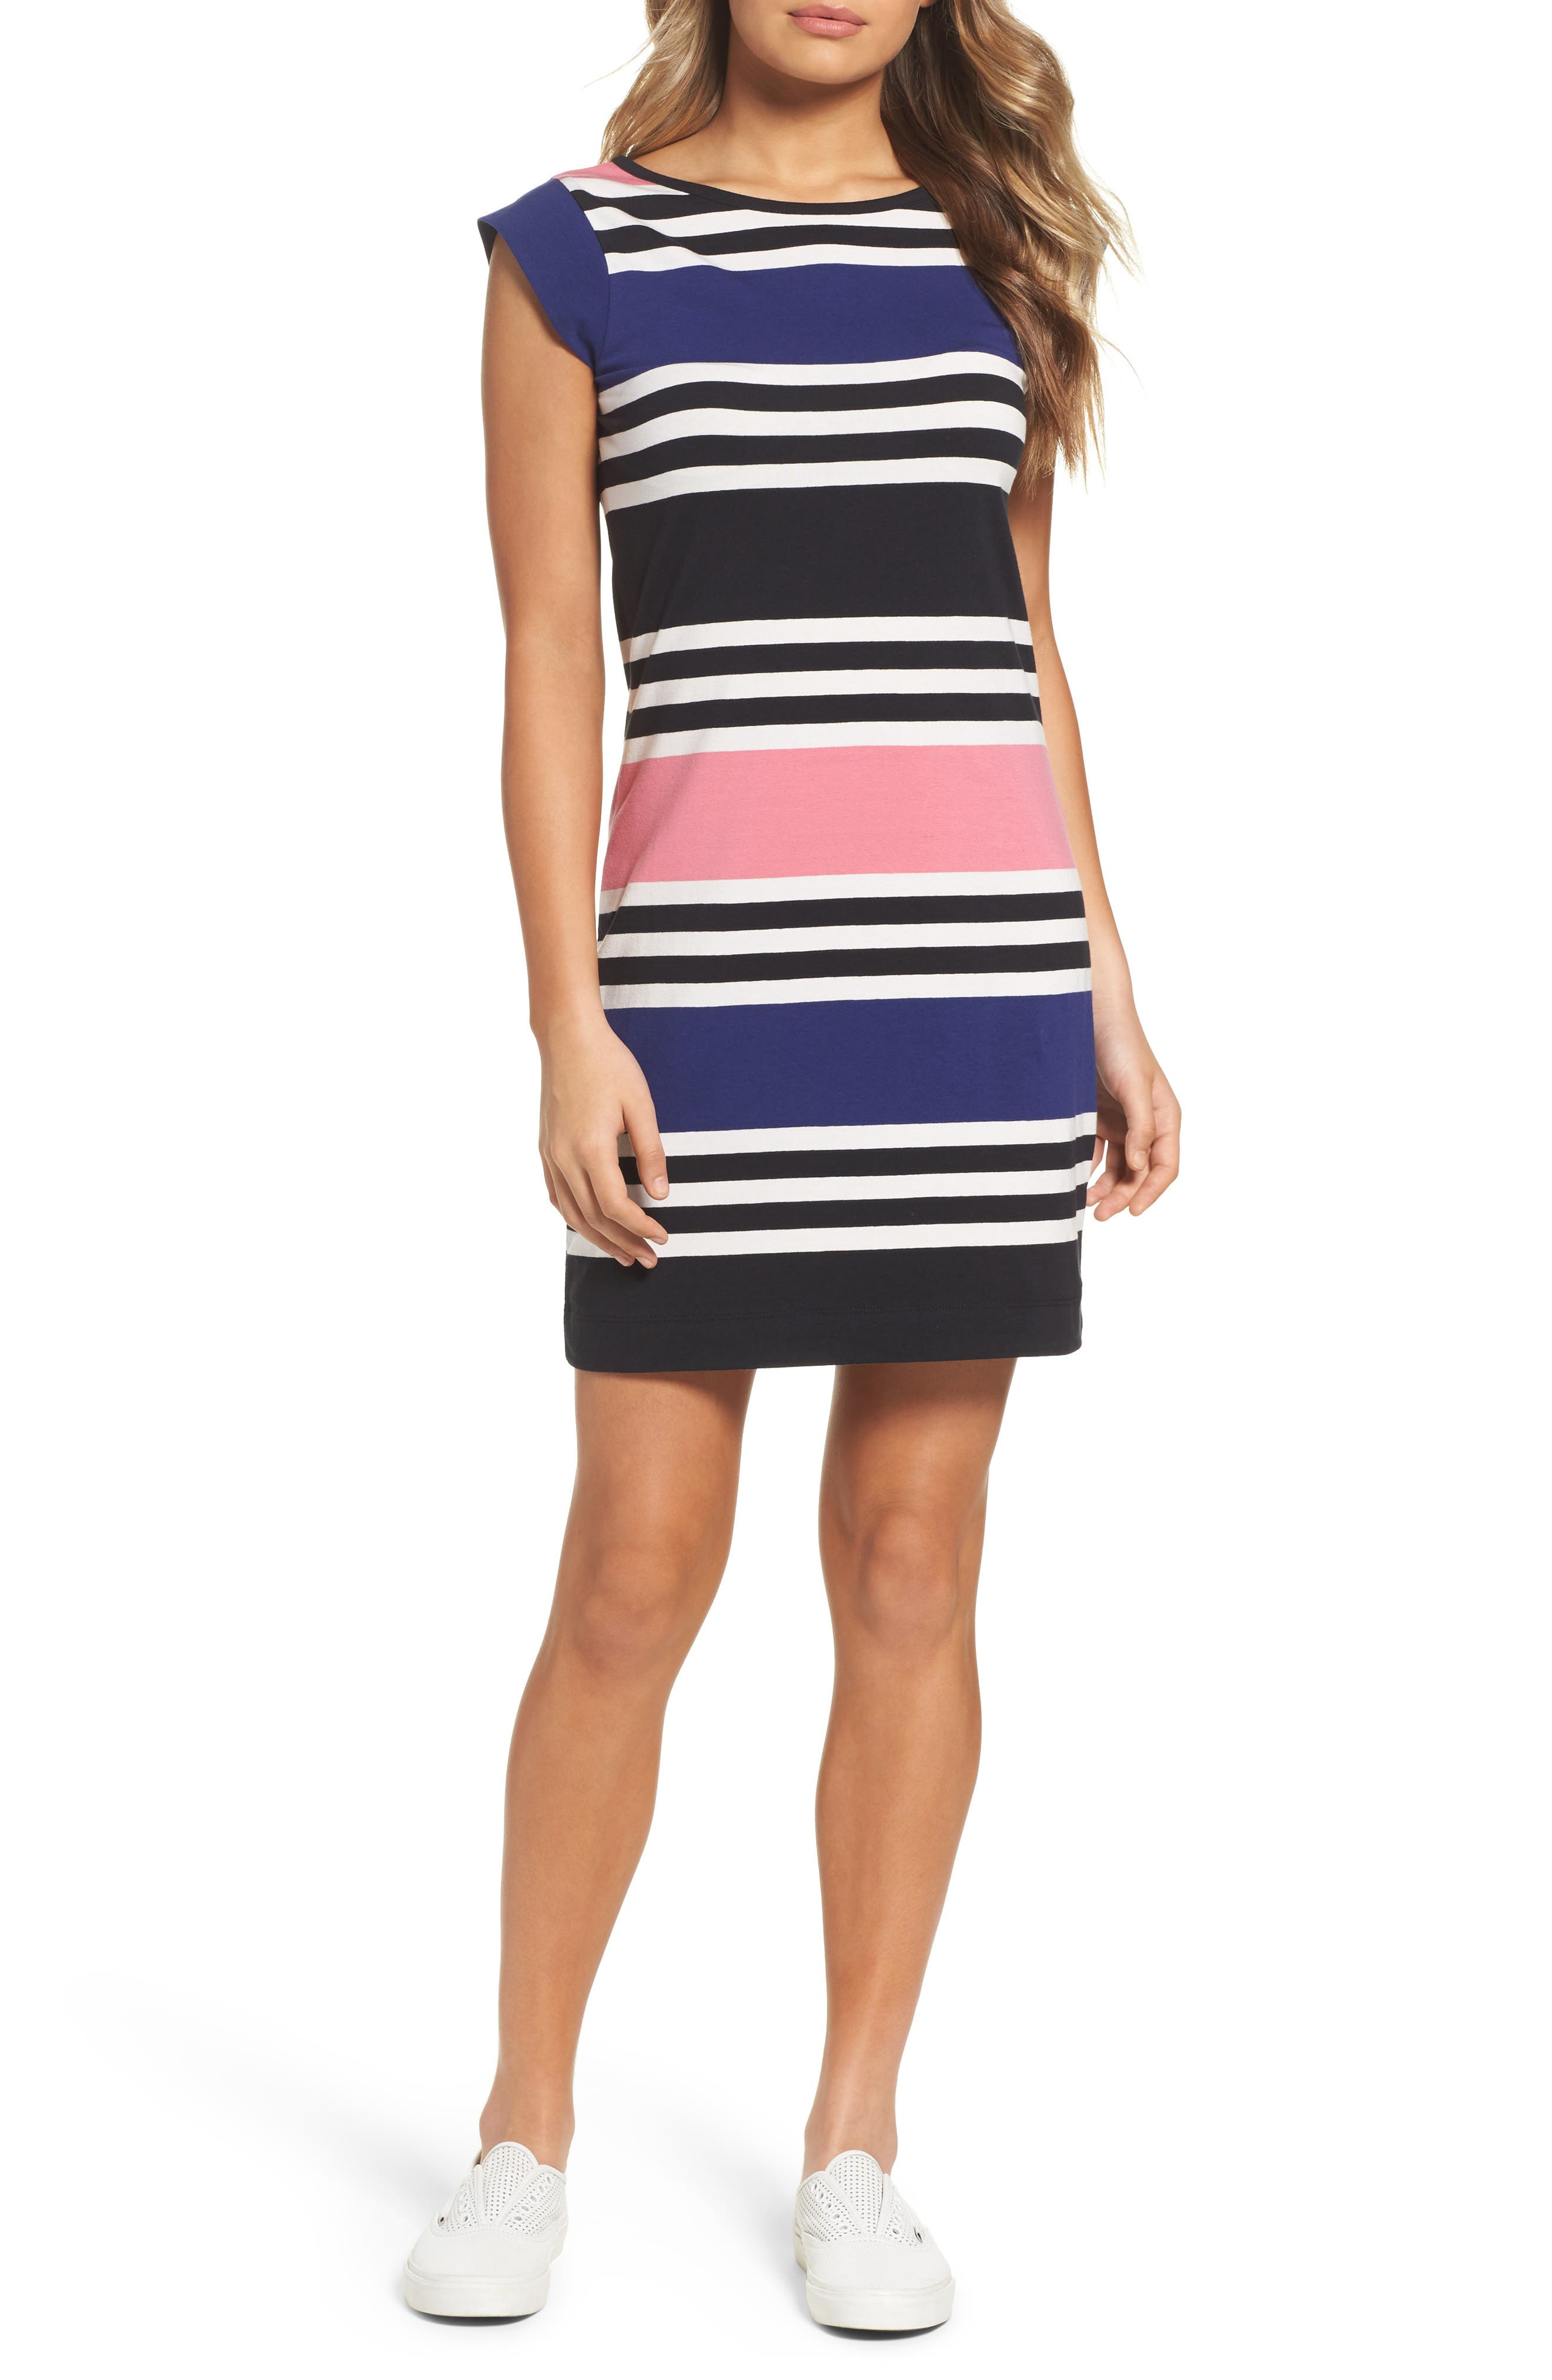 Main Image - French Connection Multi Jag Stripe T-Shirt Dress